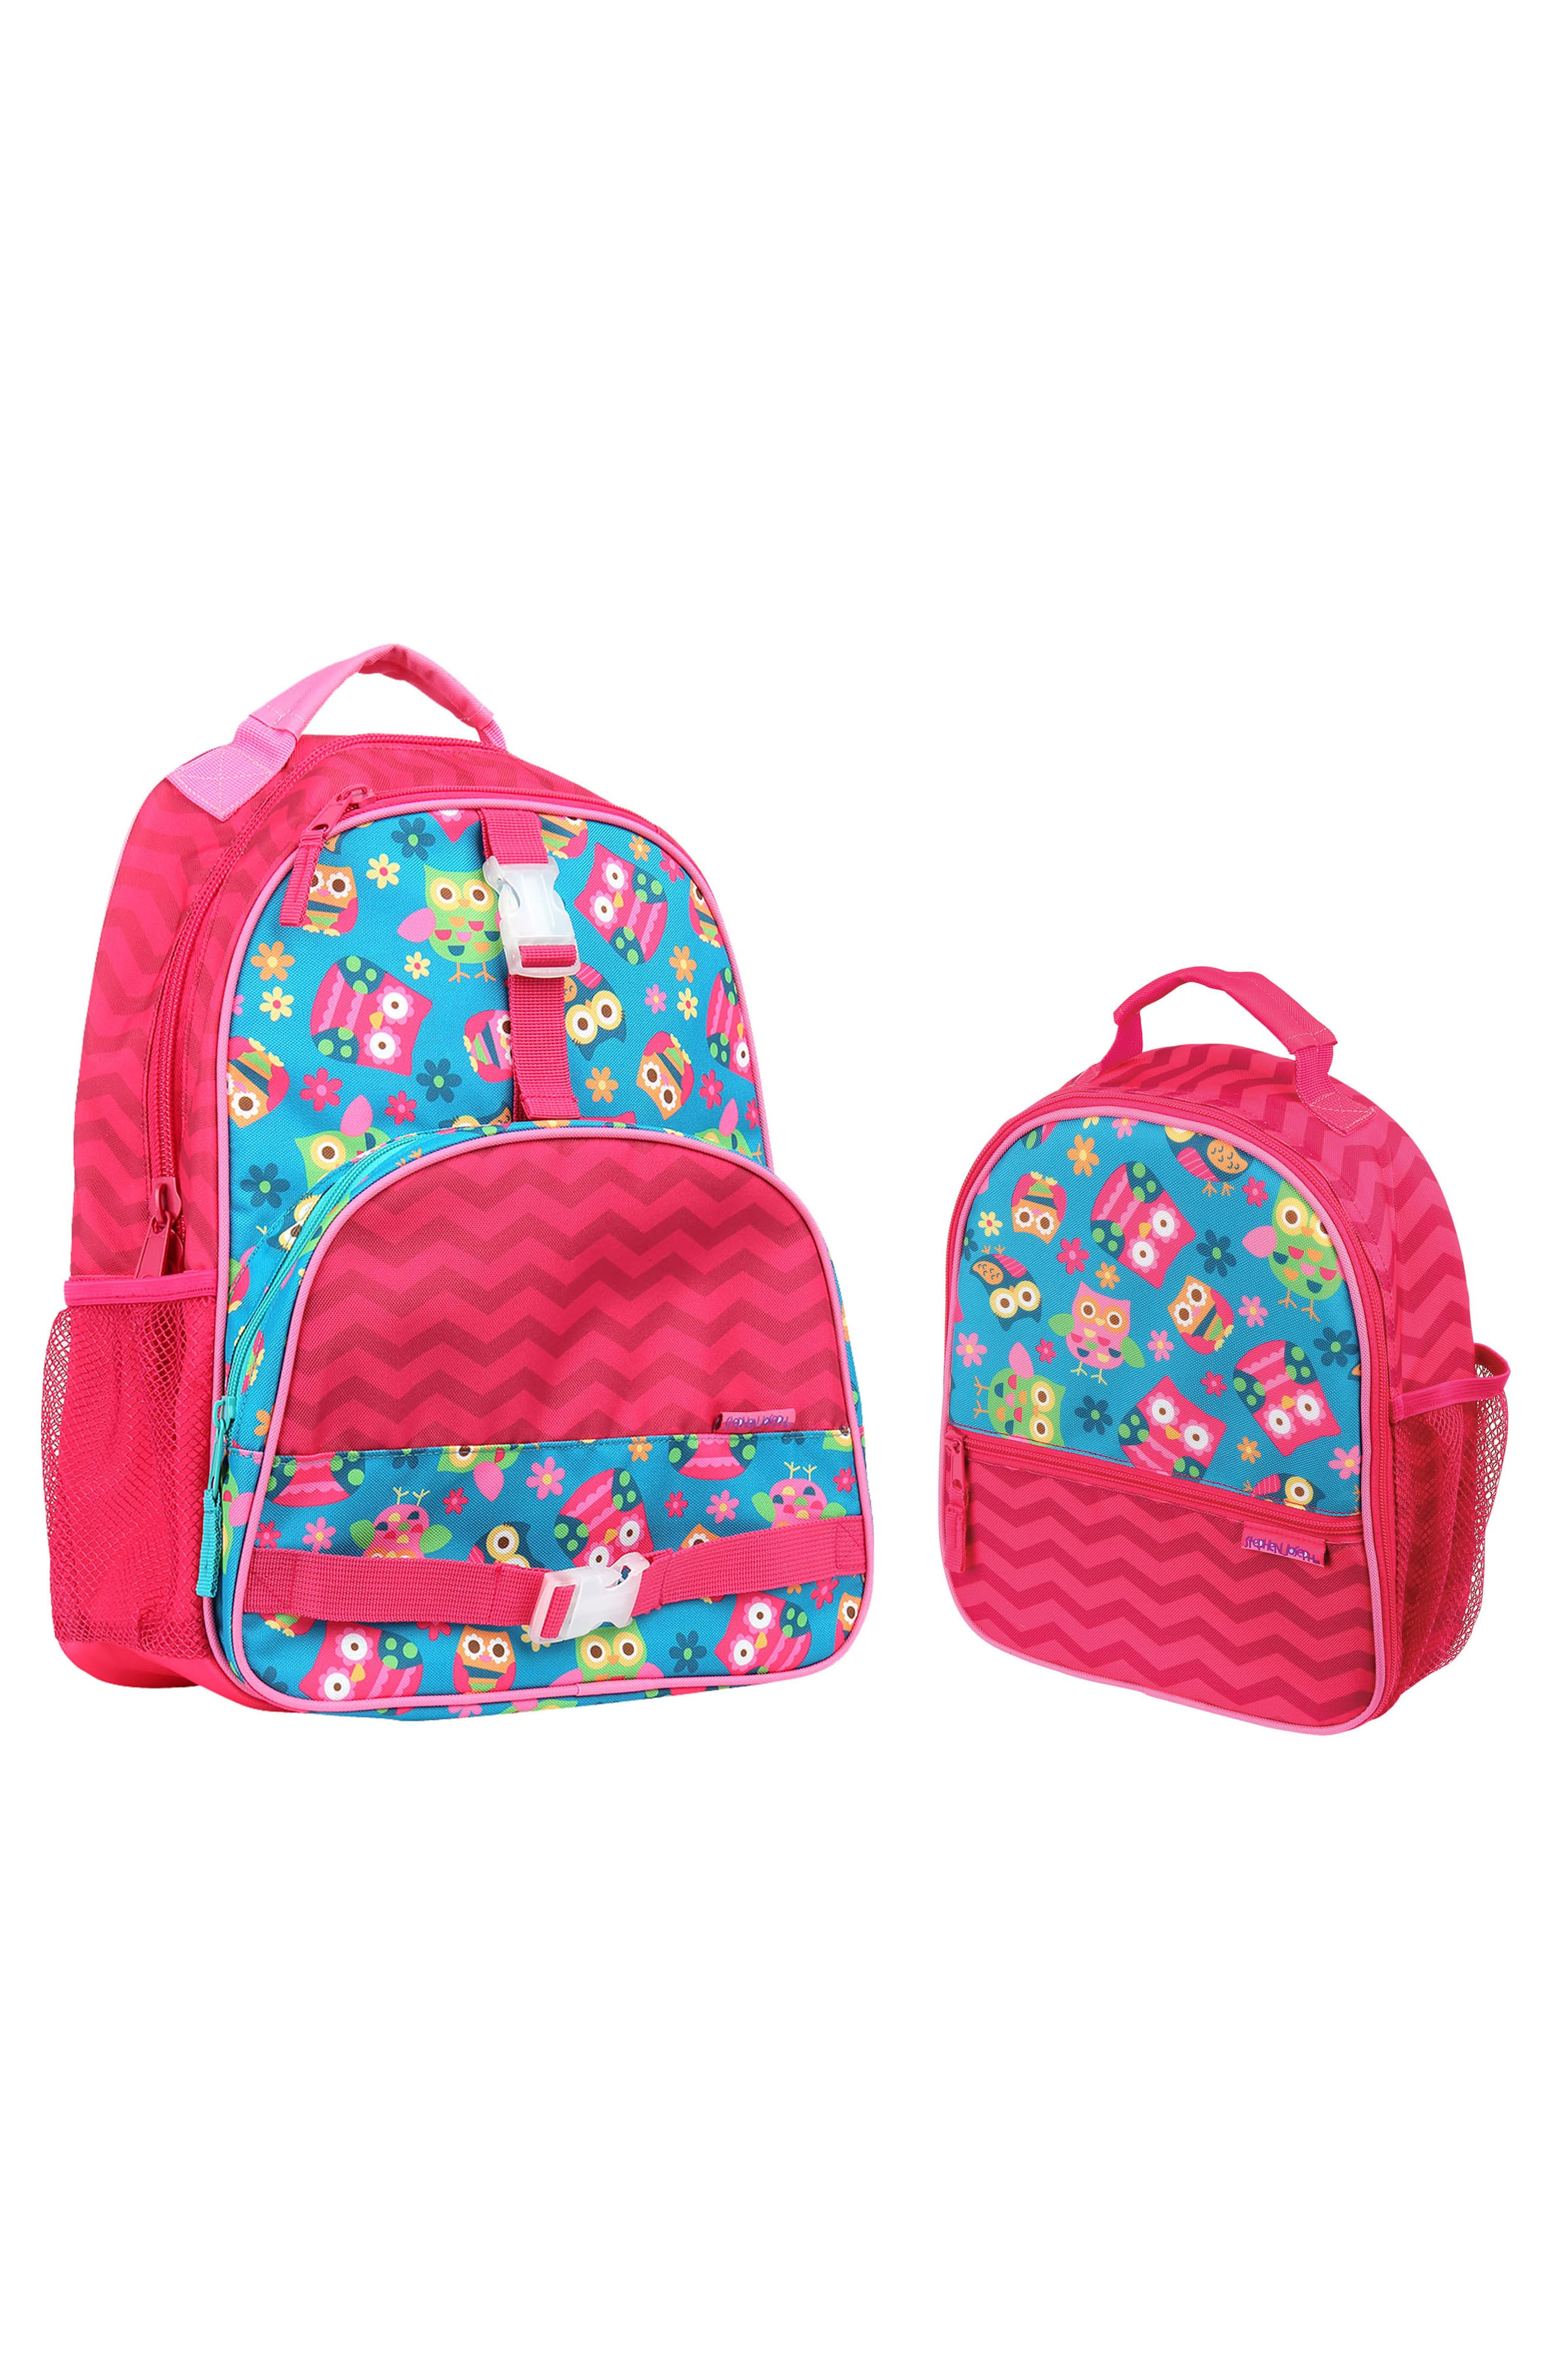 Stephen Joseph Girls Owl School Backpack and Lunch Box for Kids Book Bags